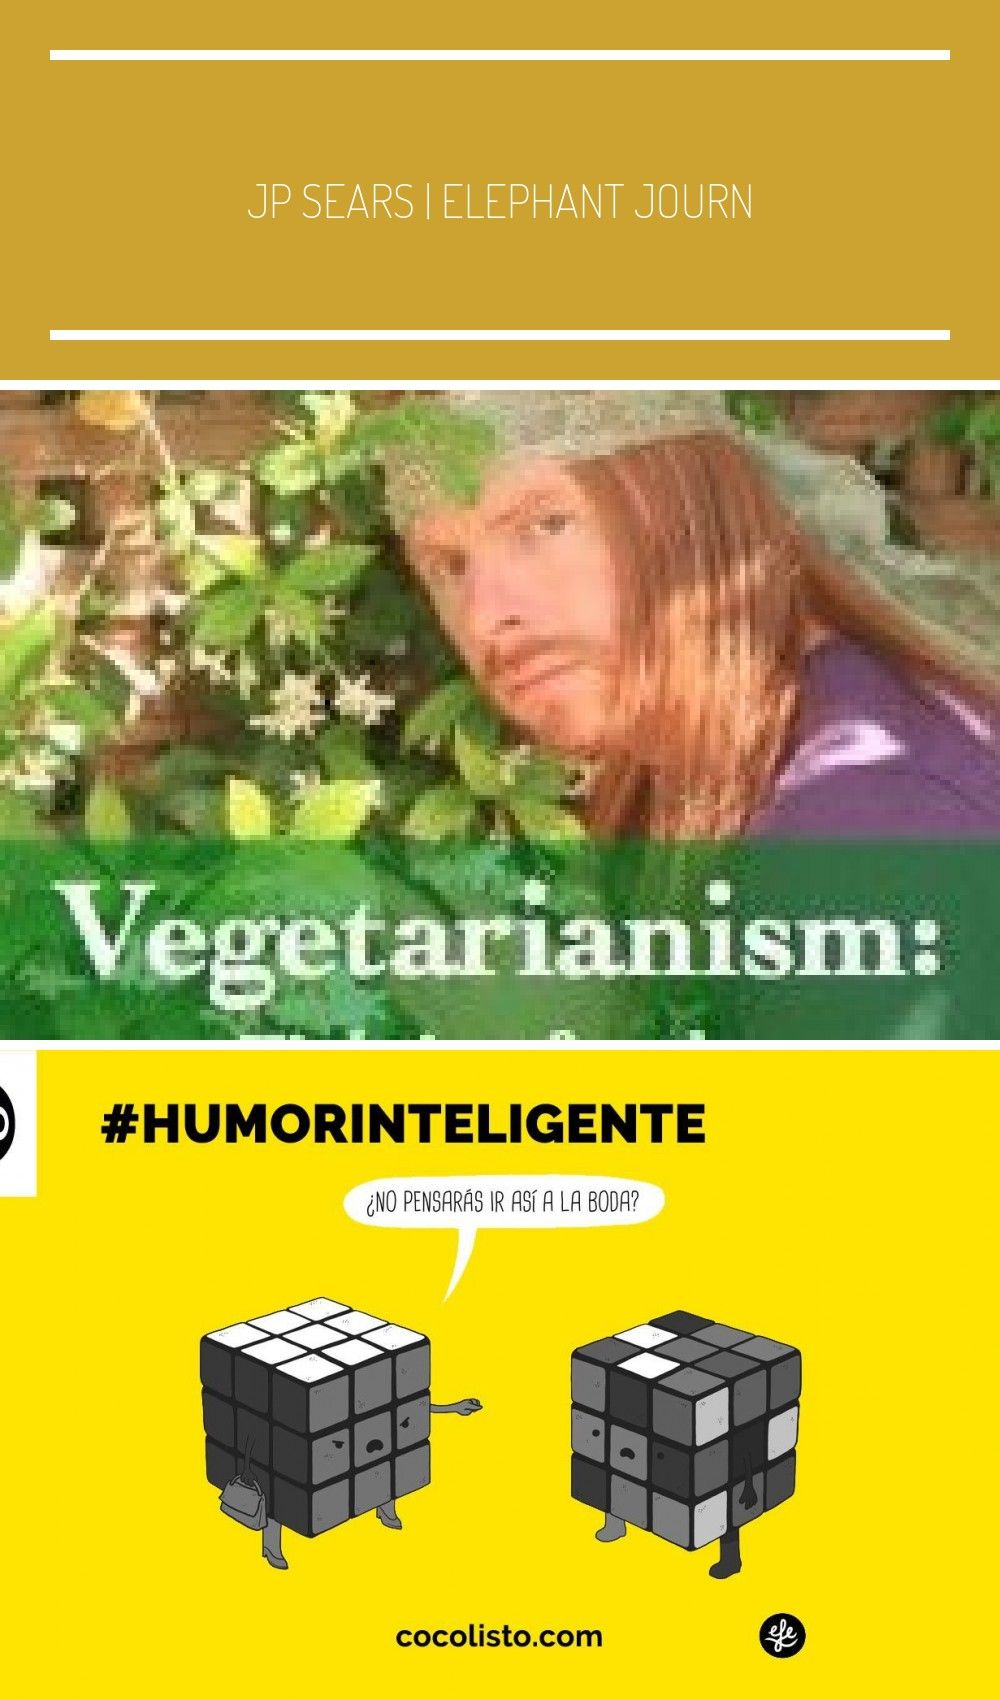 JP Sears  Elephant Journal So much great information presented in such an enter  humor inteligente  inteligente inteligente inteligente